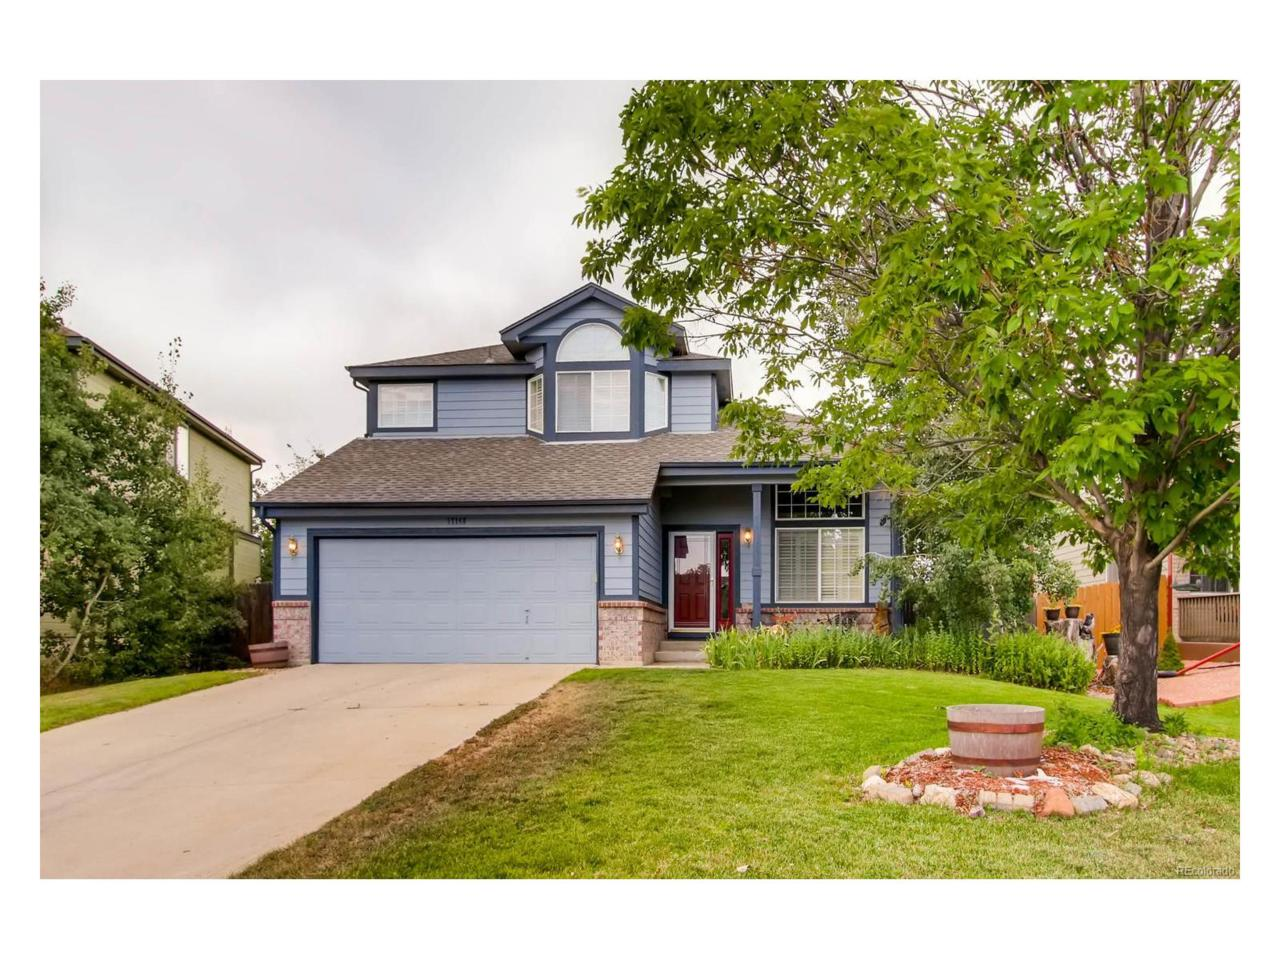 17140 W 64th Drive, Arvada, CO 80007 (MLS #5460177) :: 8z Real Estate